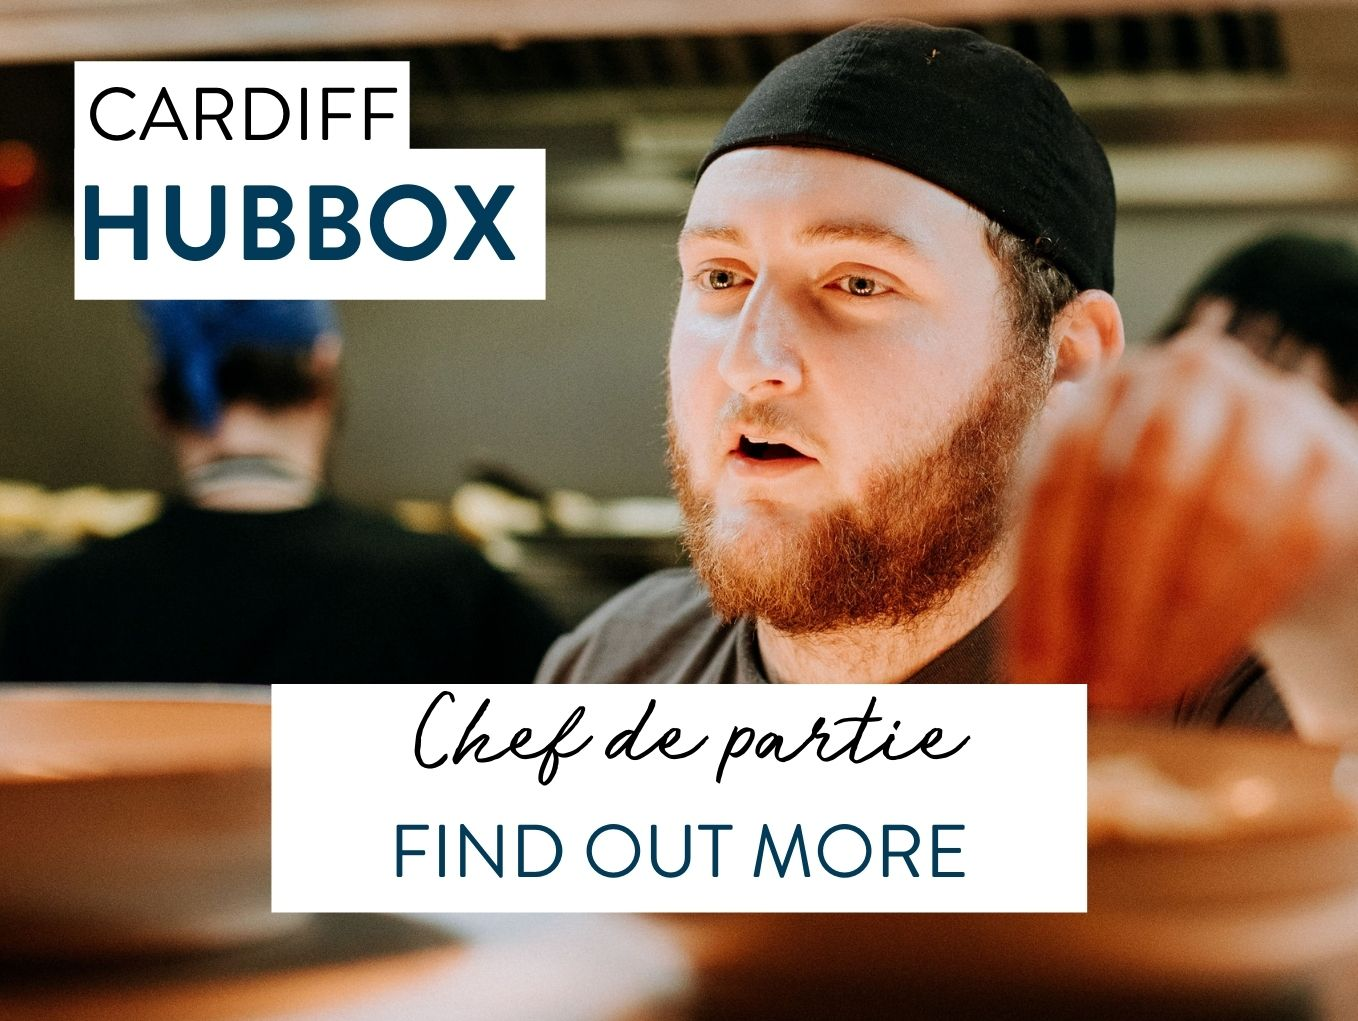 Hubbox Cardiff recruitment chef de partie